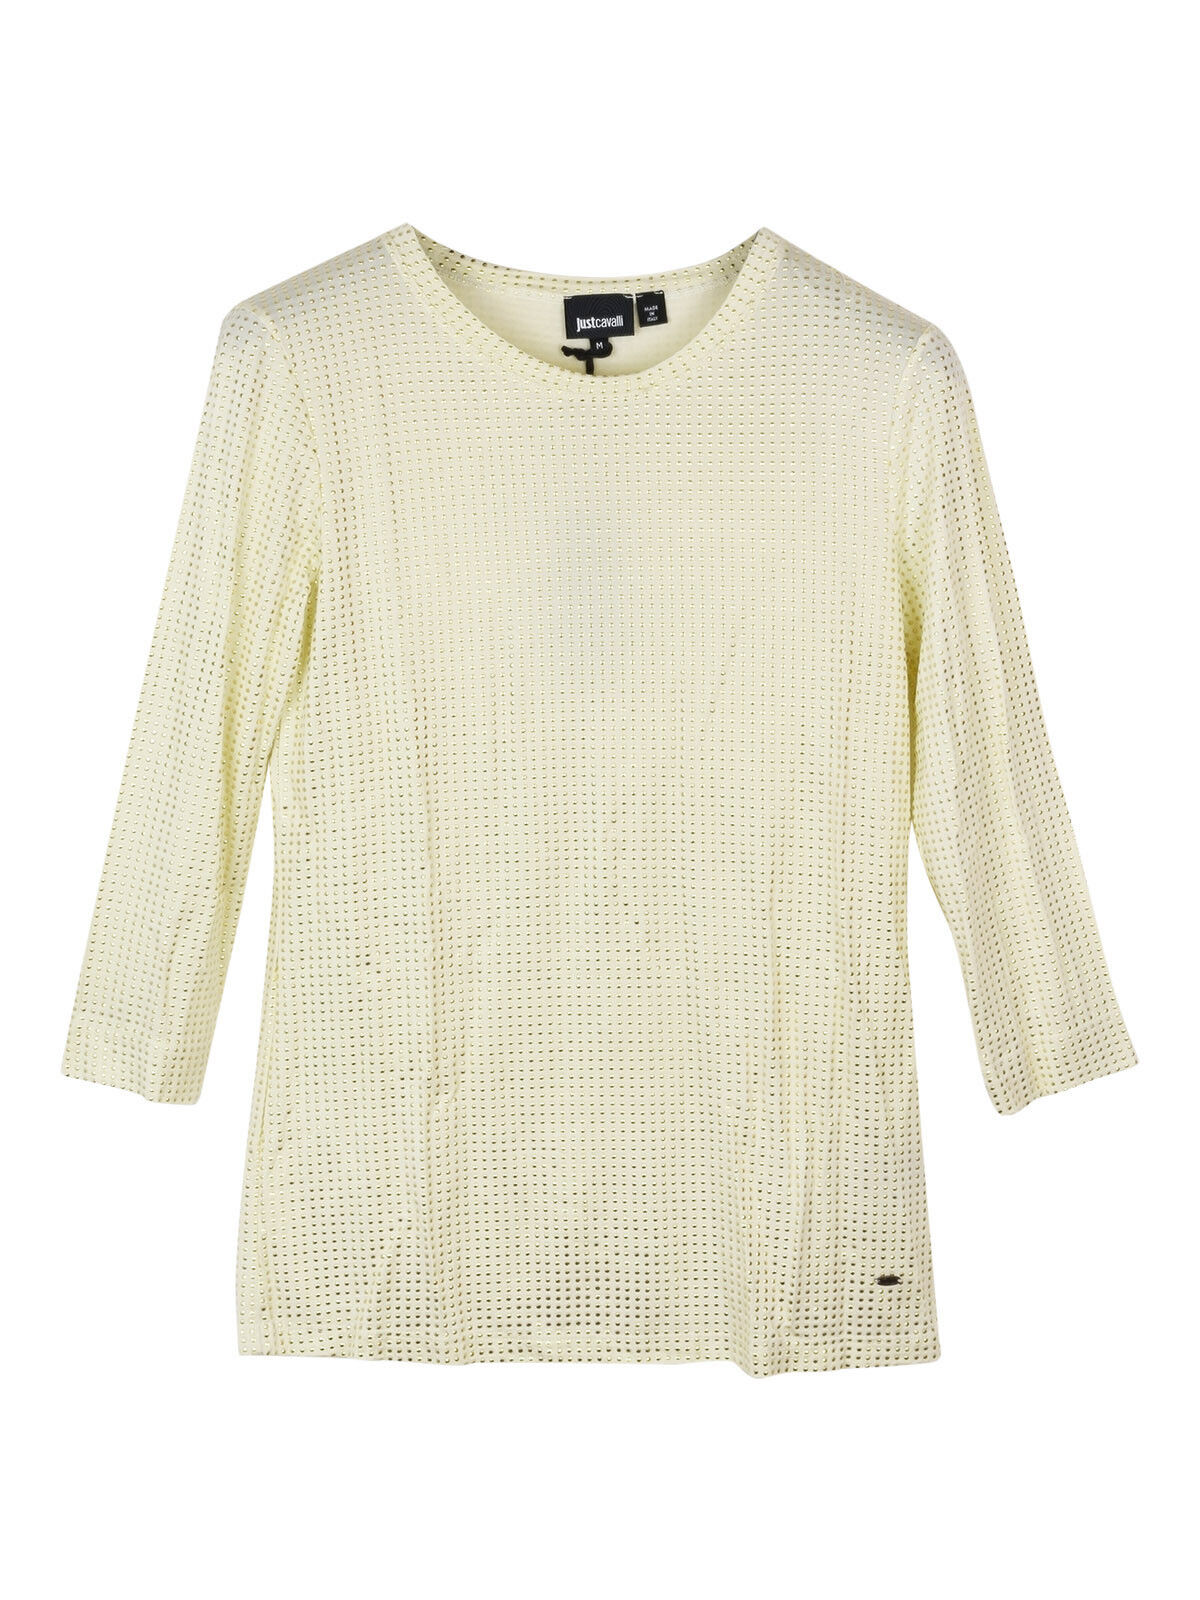 Just Cavalli Gold dotted three quarter length sleeve top